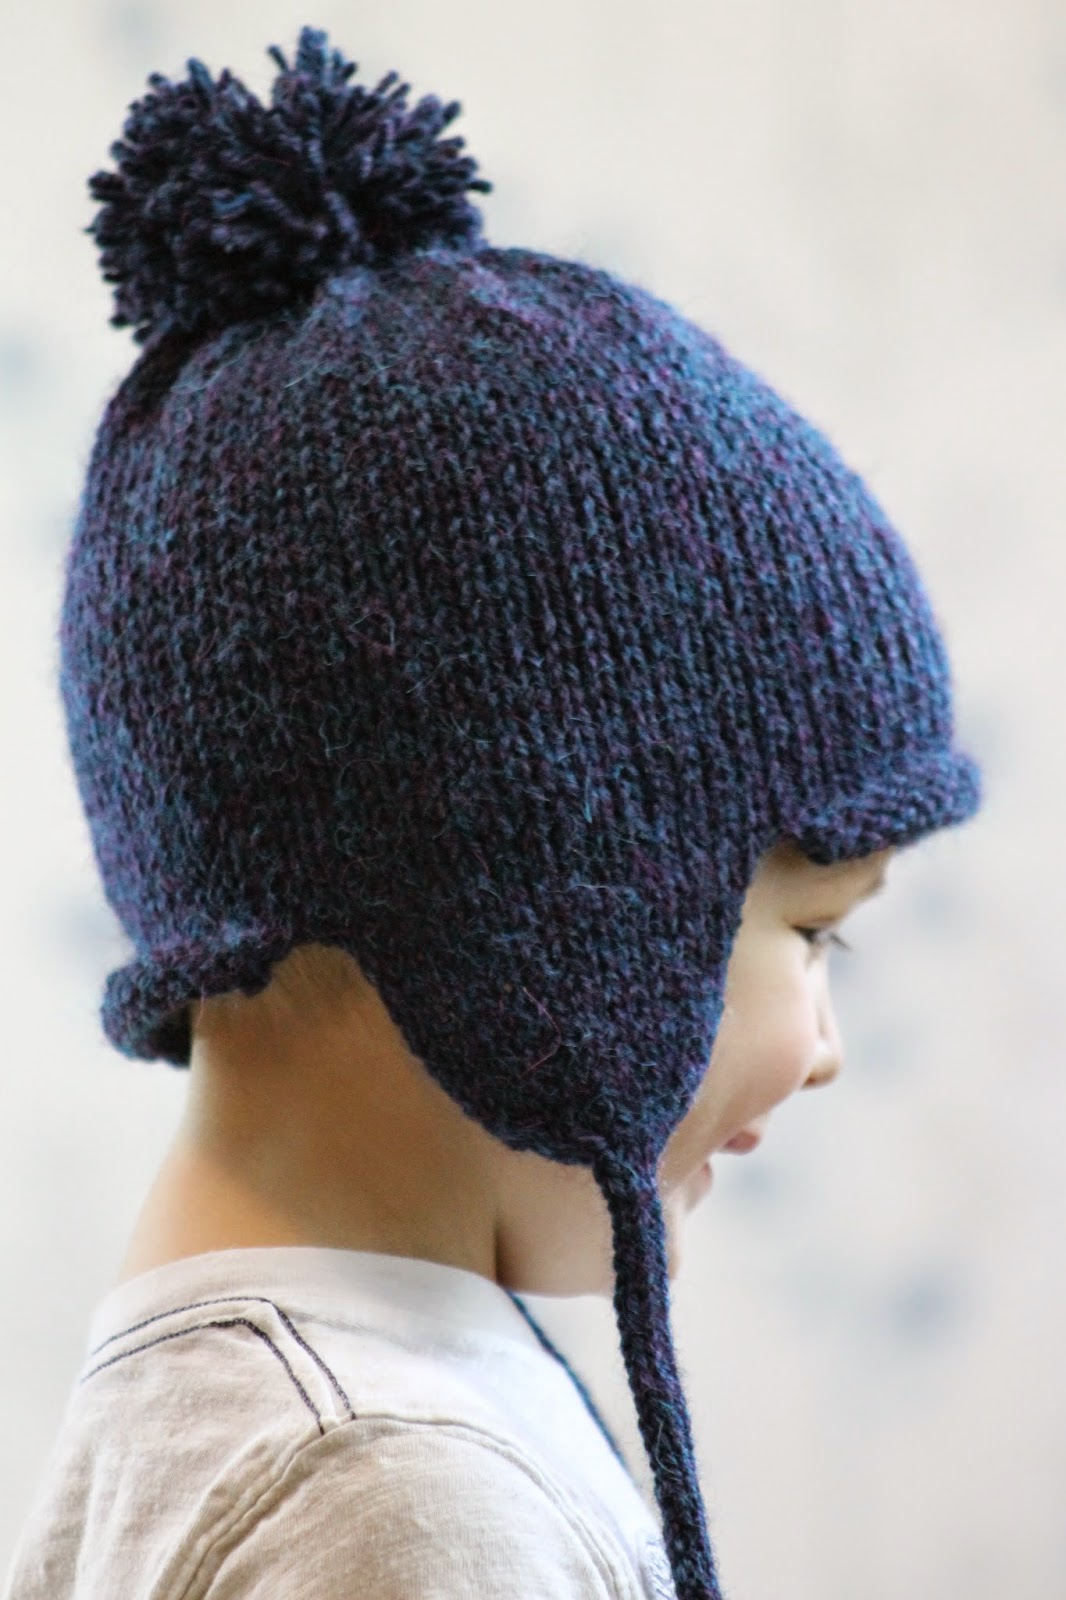 Knitting Pattern For Toddler Hat With Earflaps : Balls to the Walls Knits: All in the Family Earflap Hat